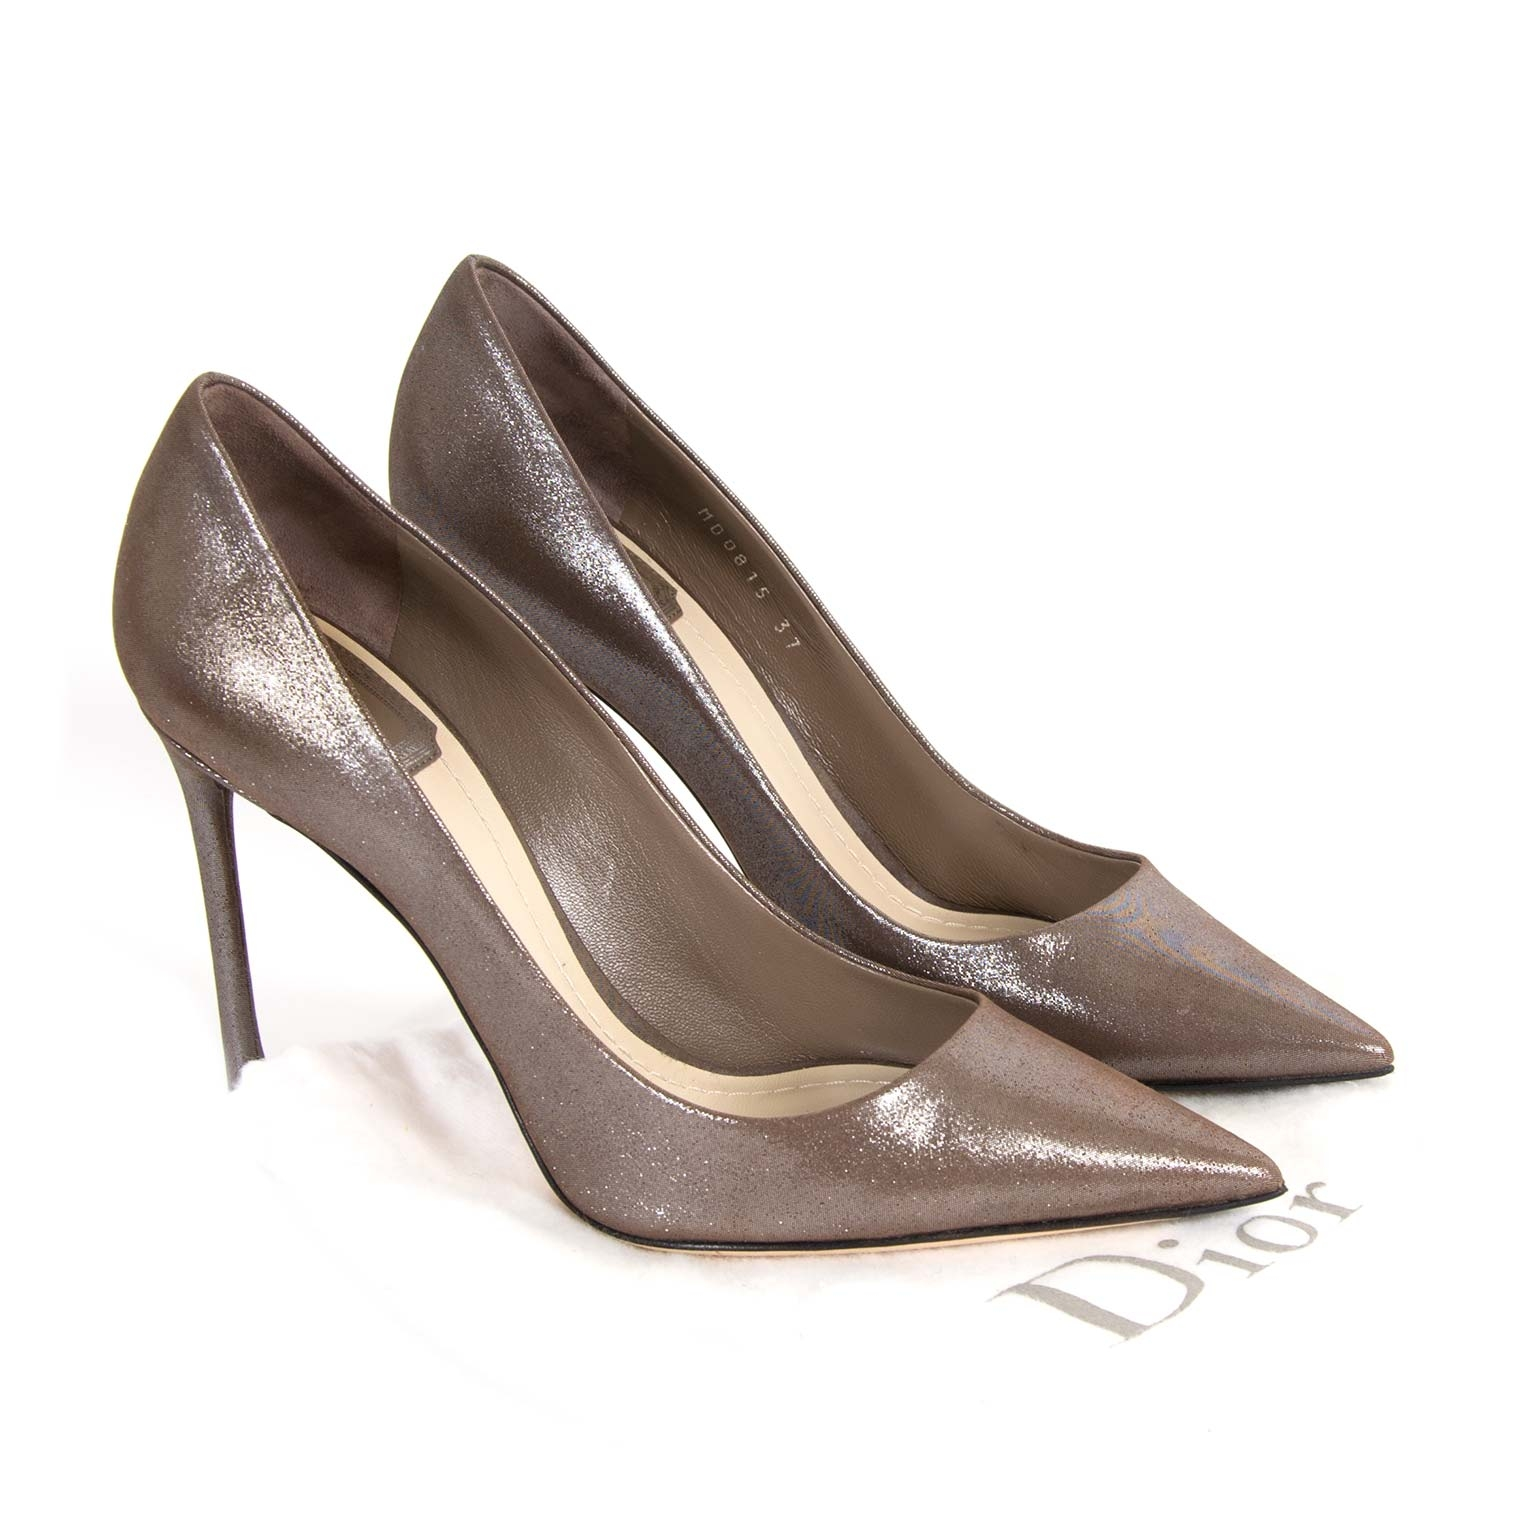 11ac59b367e7 ... Christian Dior Bronze Pumps - Size 37 now for sale at labellov vintage  fashion webshop belgium